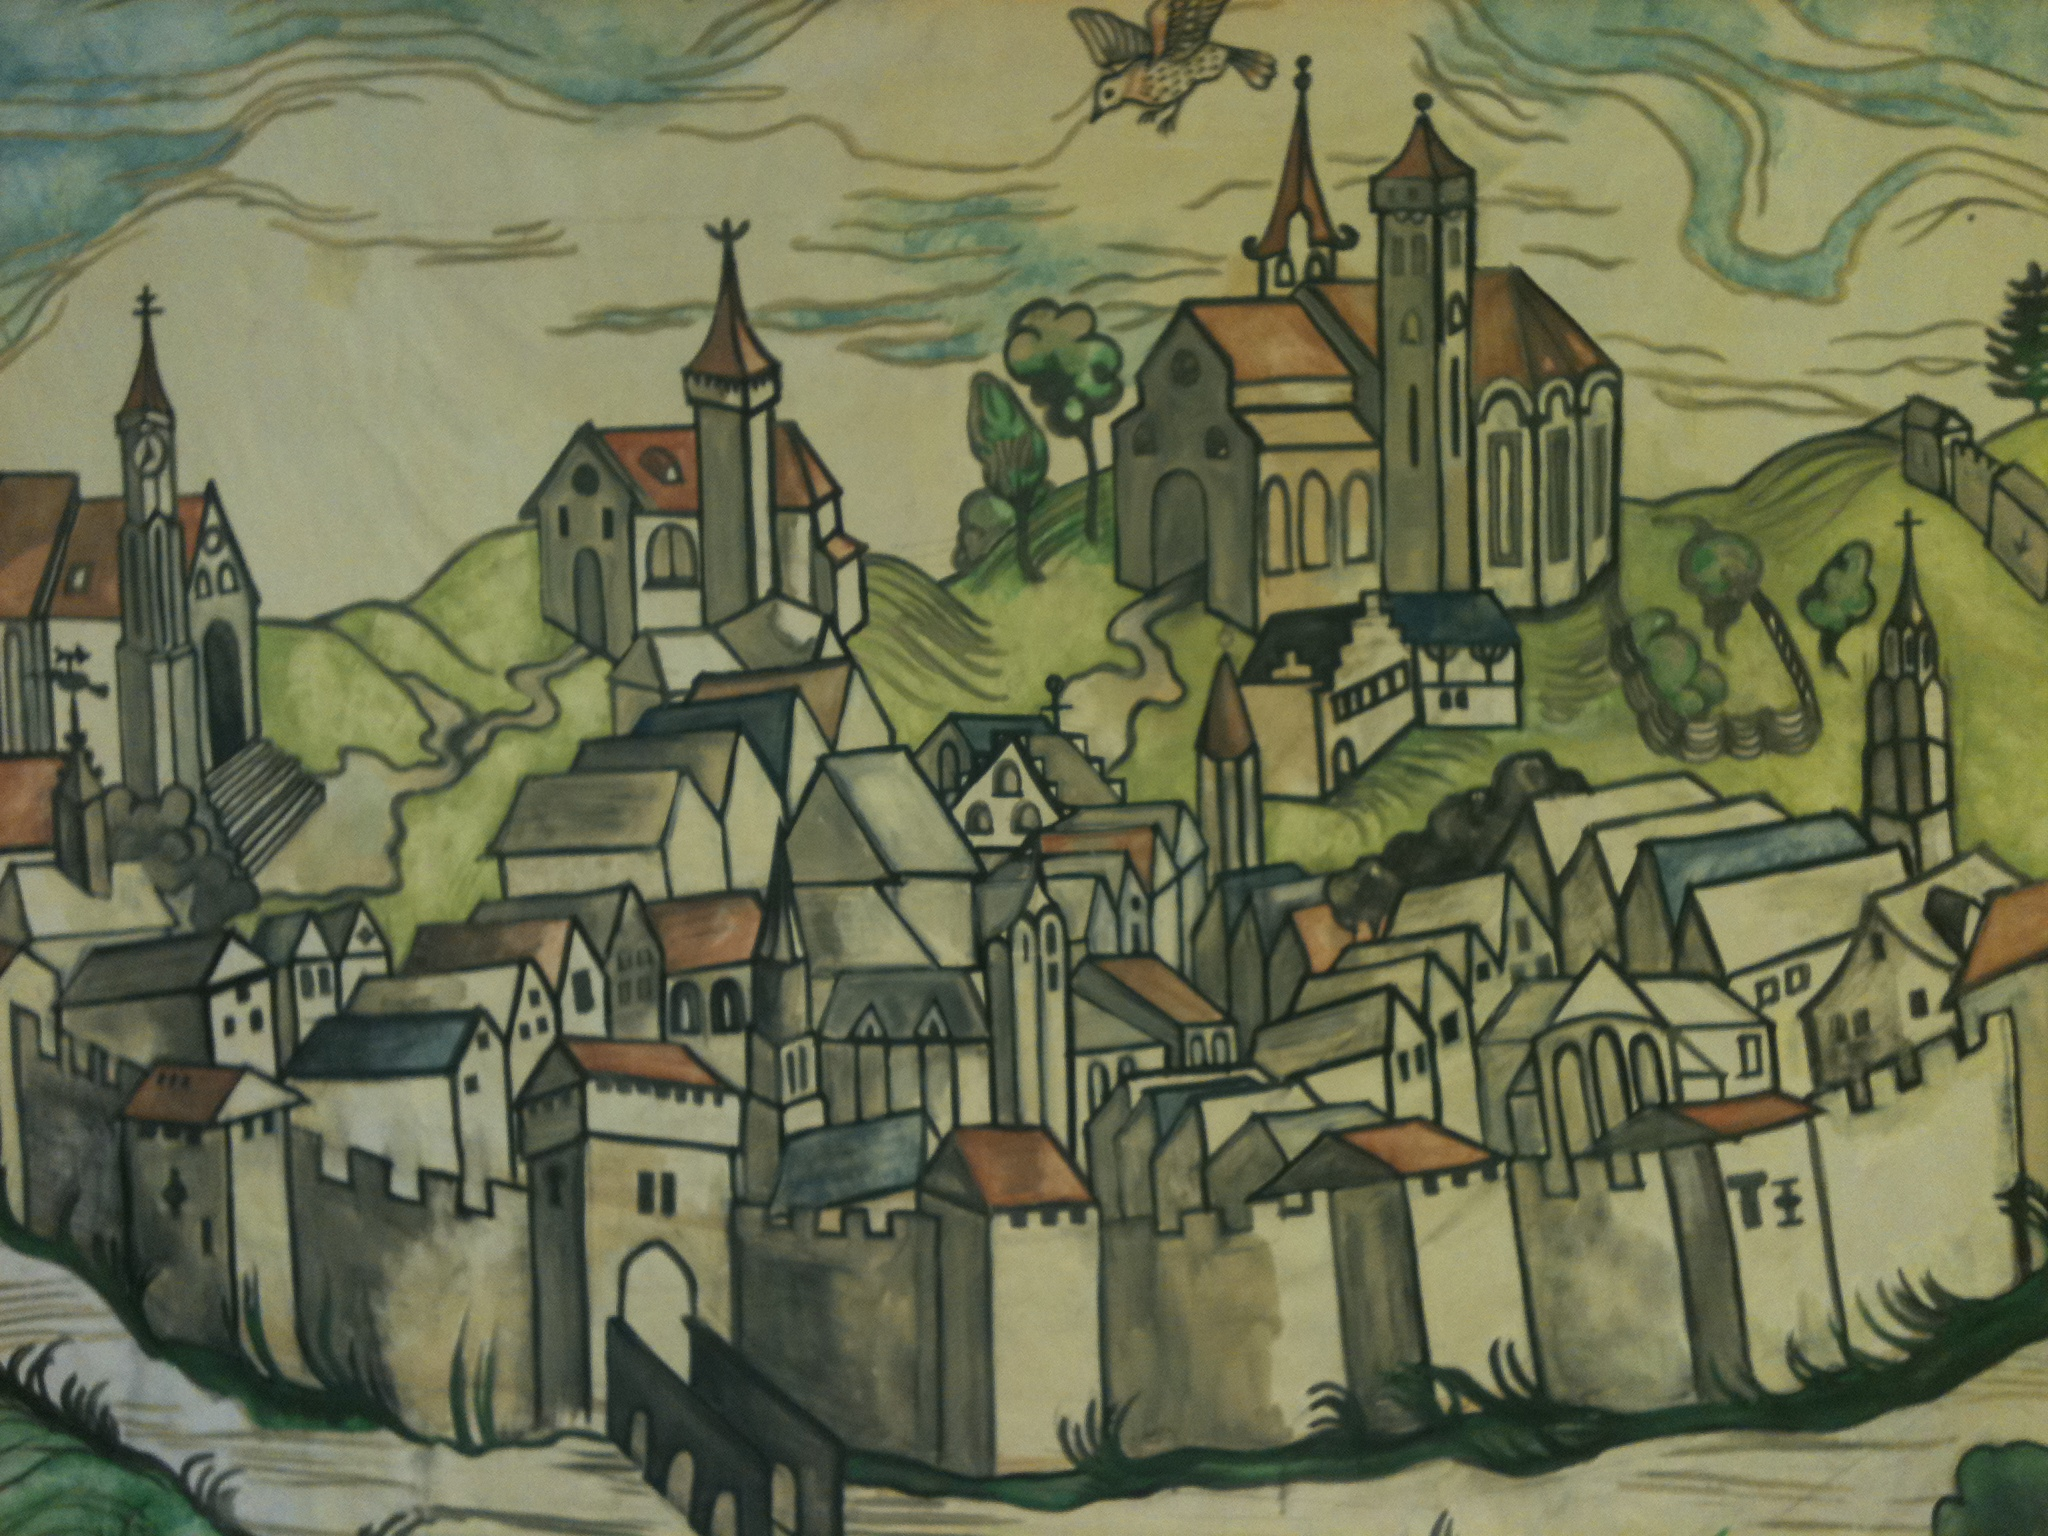 2048x1536 Medieval Town Mural Jesse Hawley Illustration